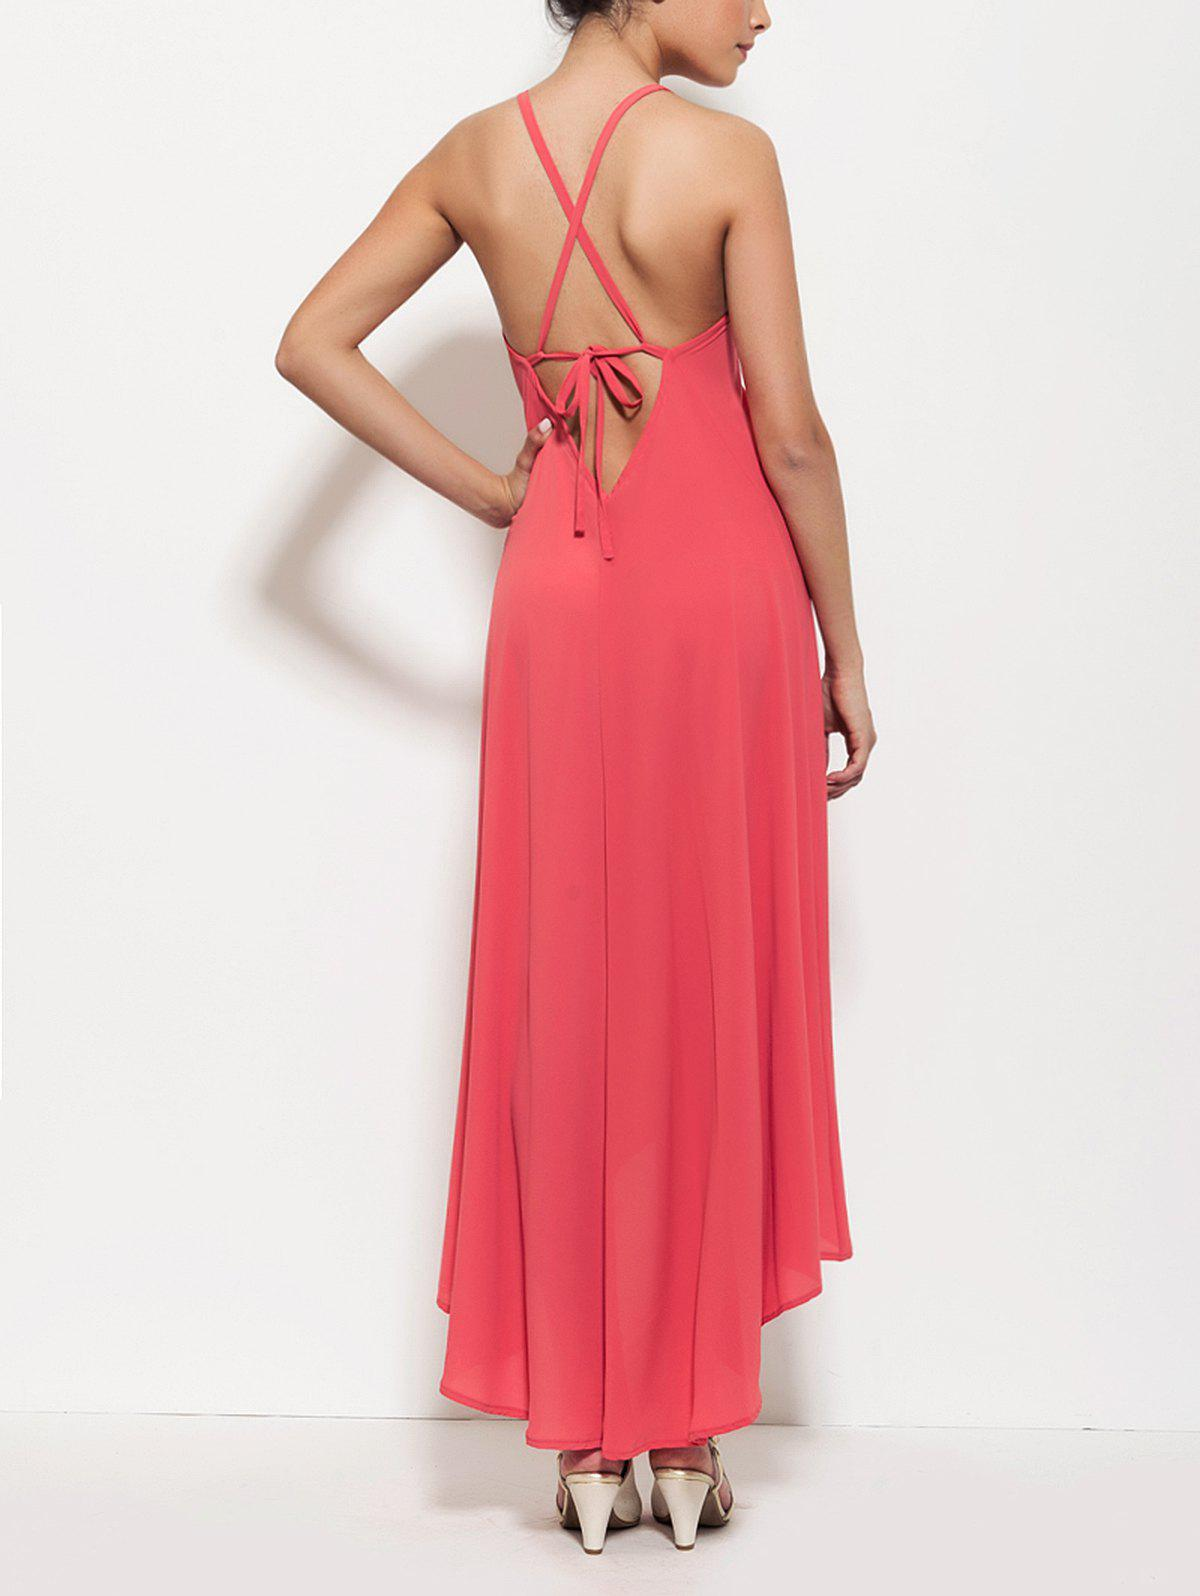 Long Backless Criss Cross Prom Party Dress - ROSE RED XL